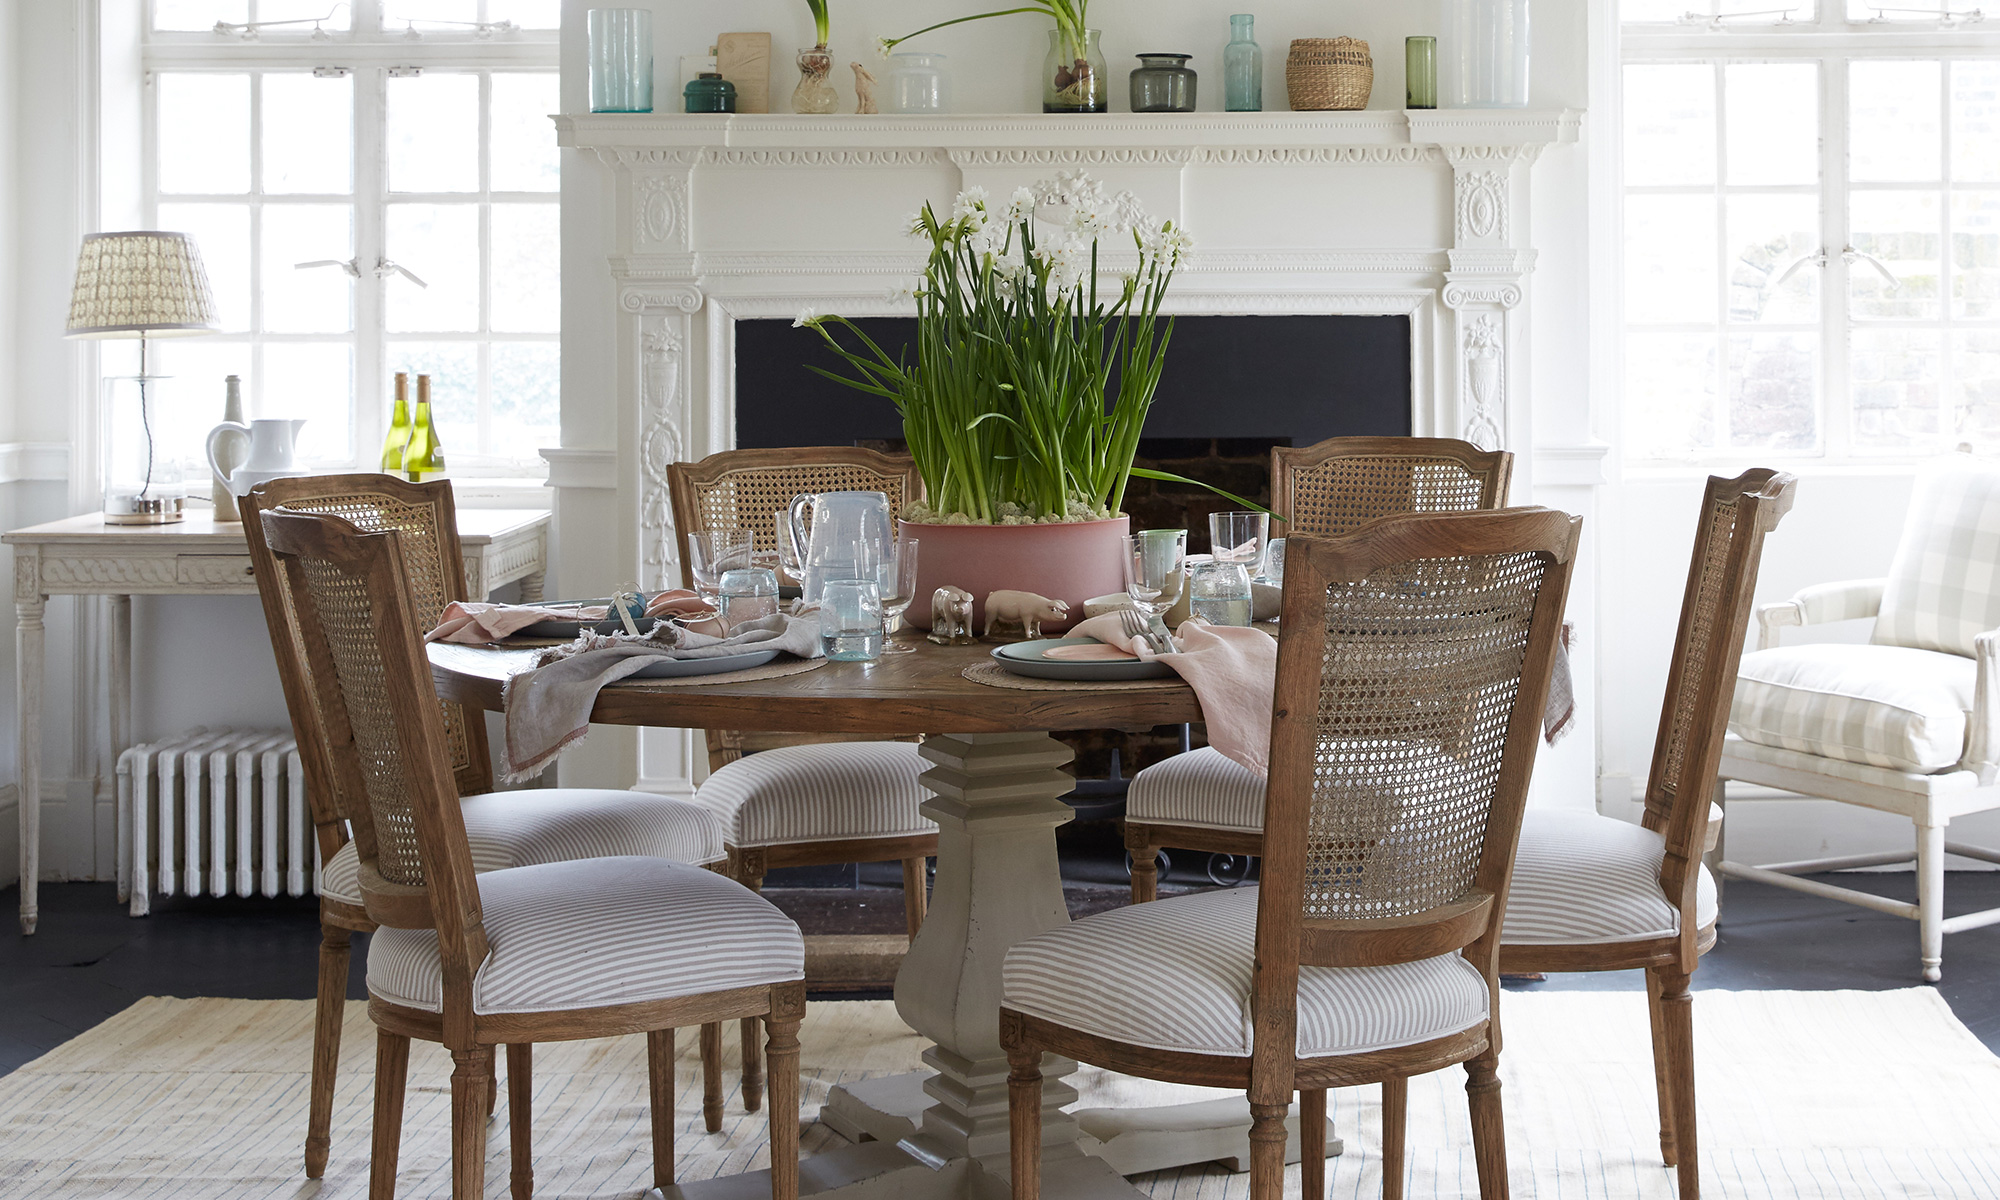 Easter table decoration ideas using gentle tones